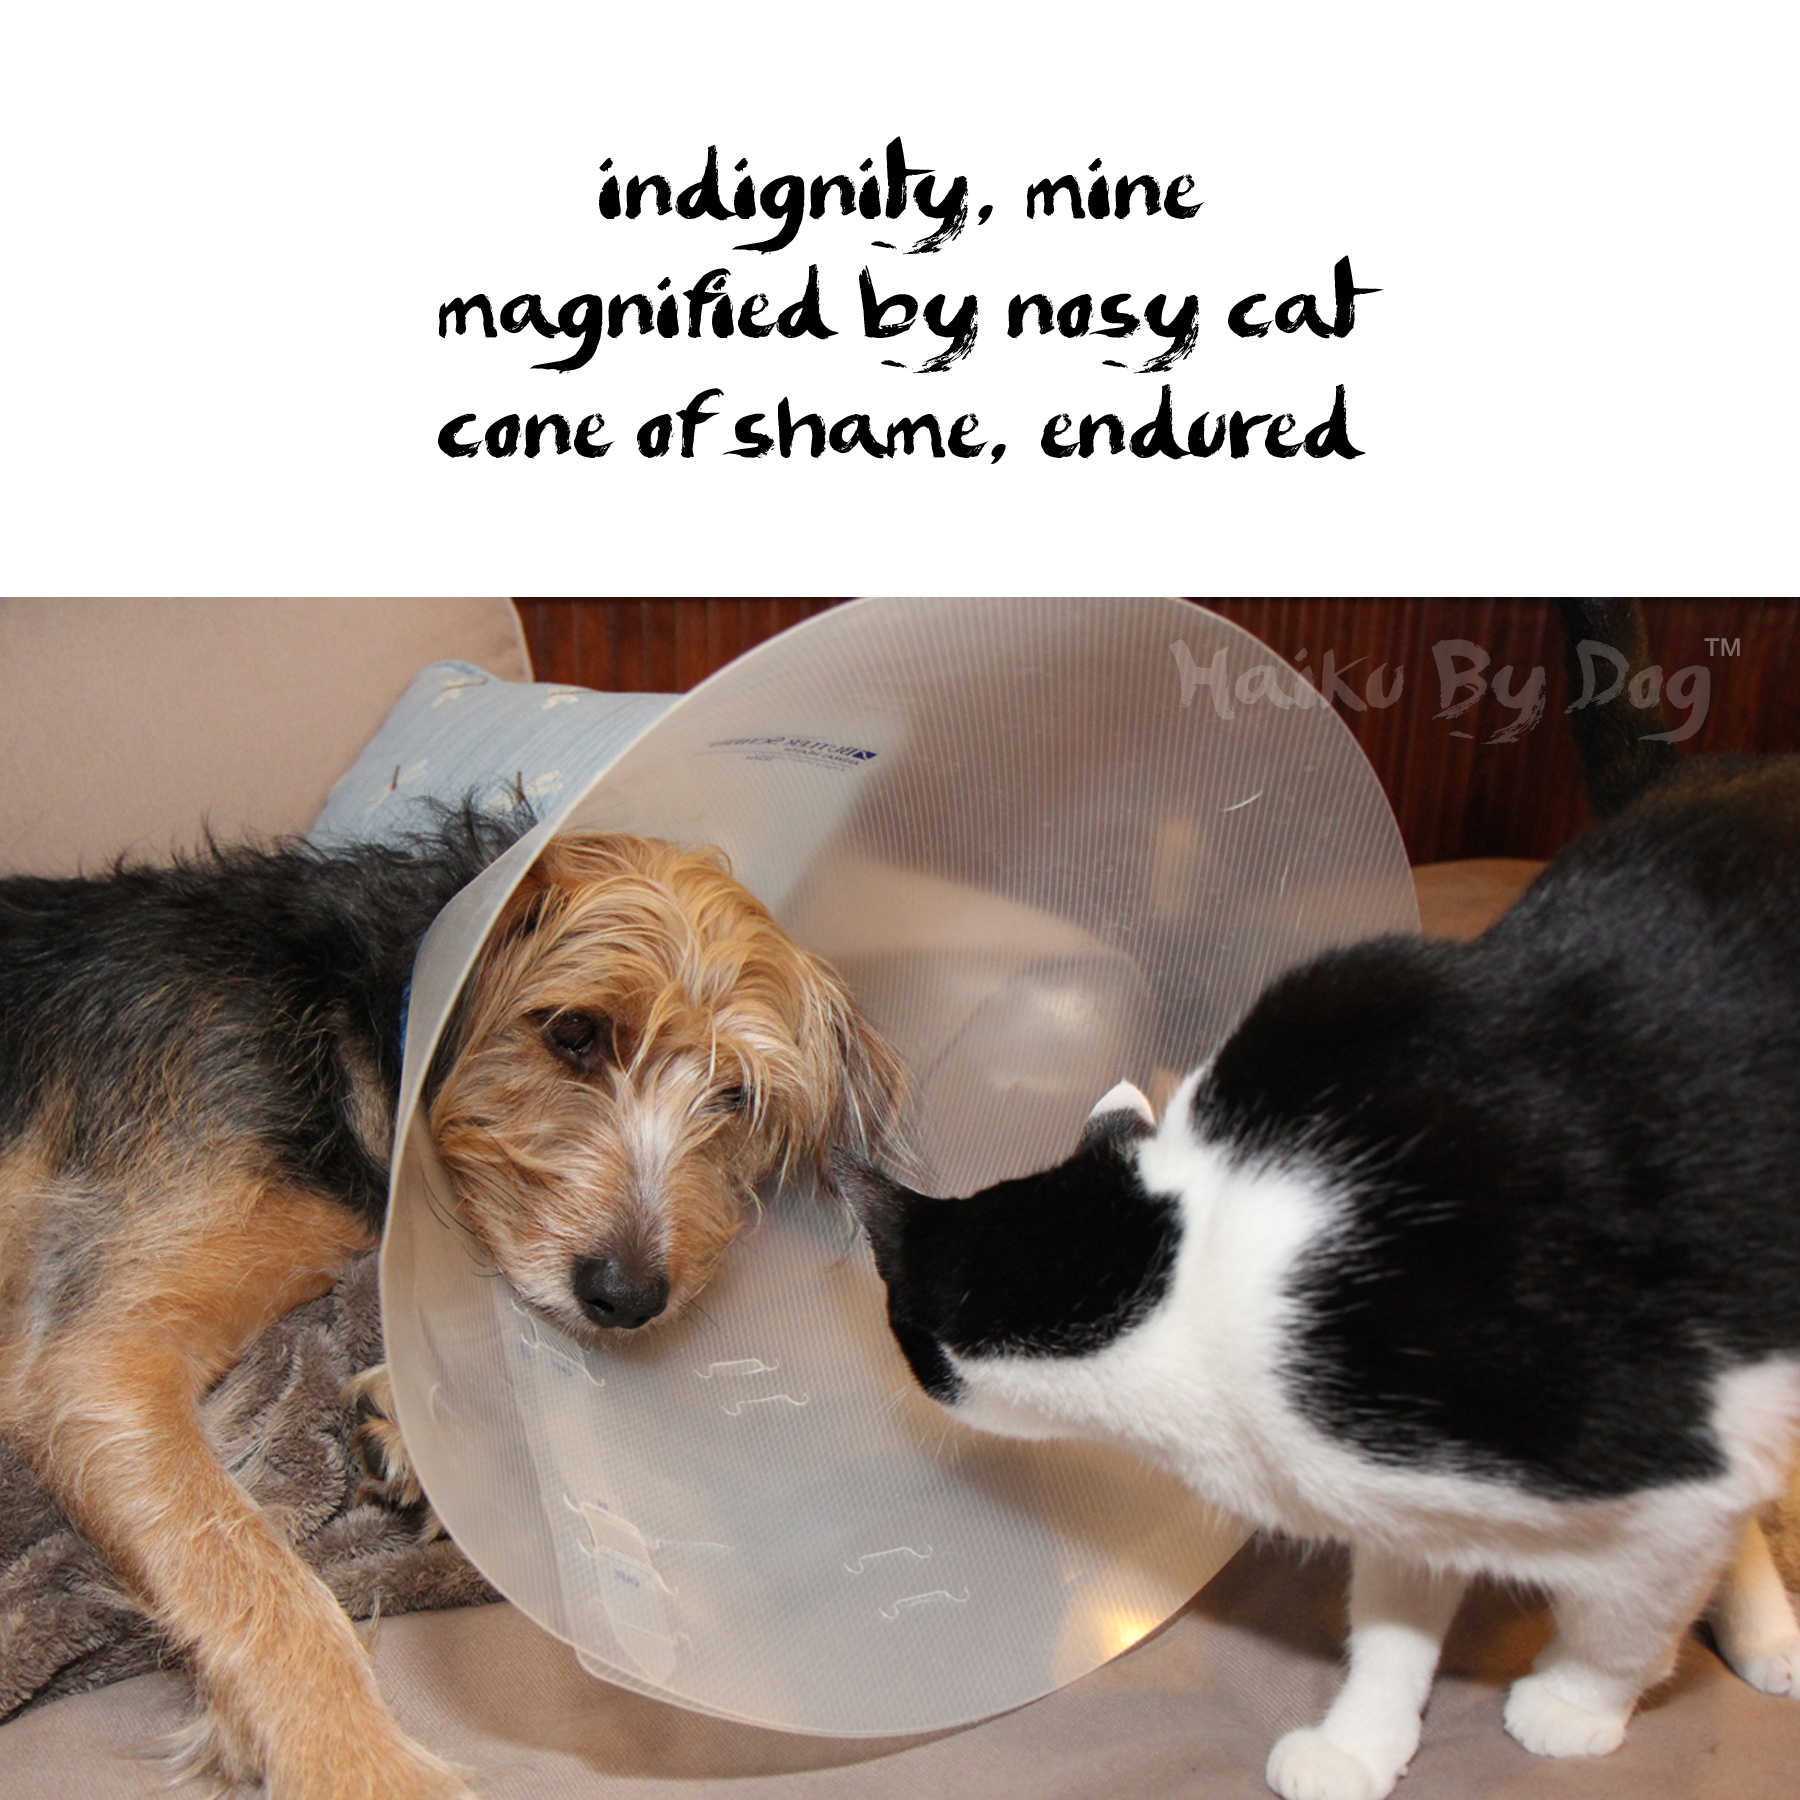 Haiku by Dog: indignity, mine / magnified by nosy cat / cone of shame, endured